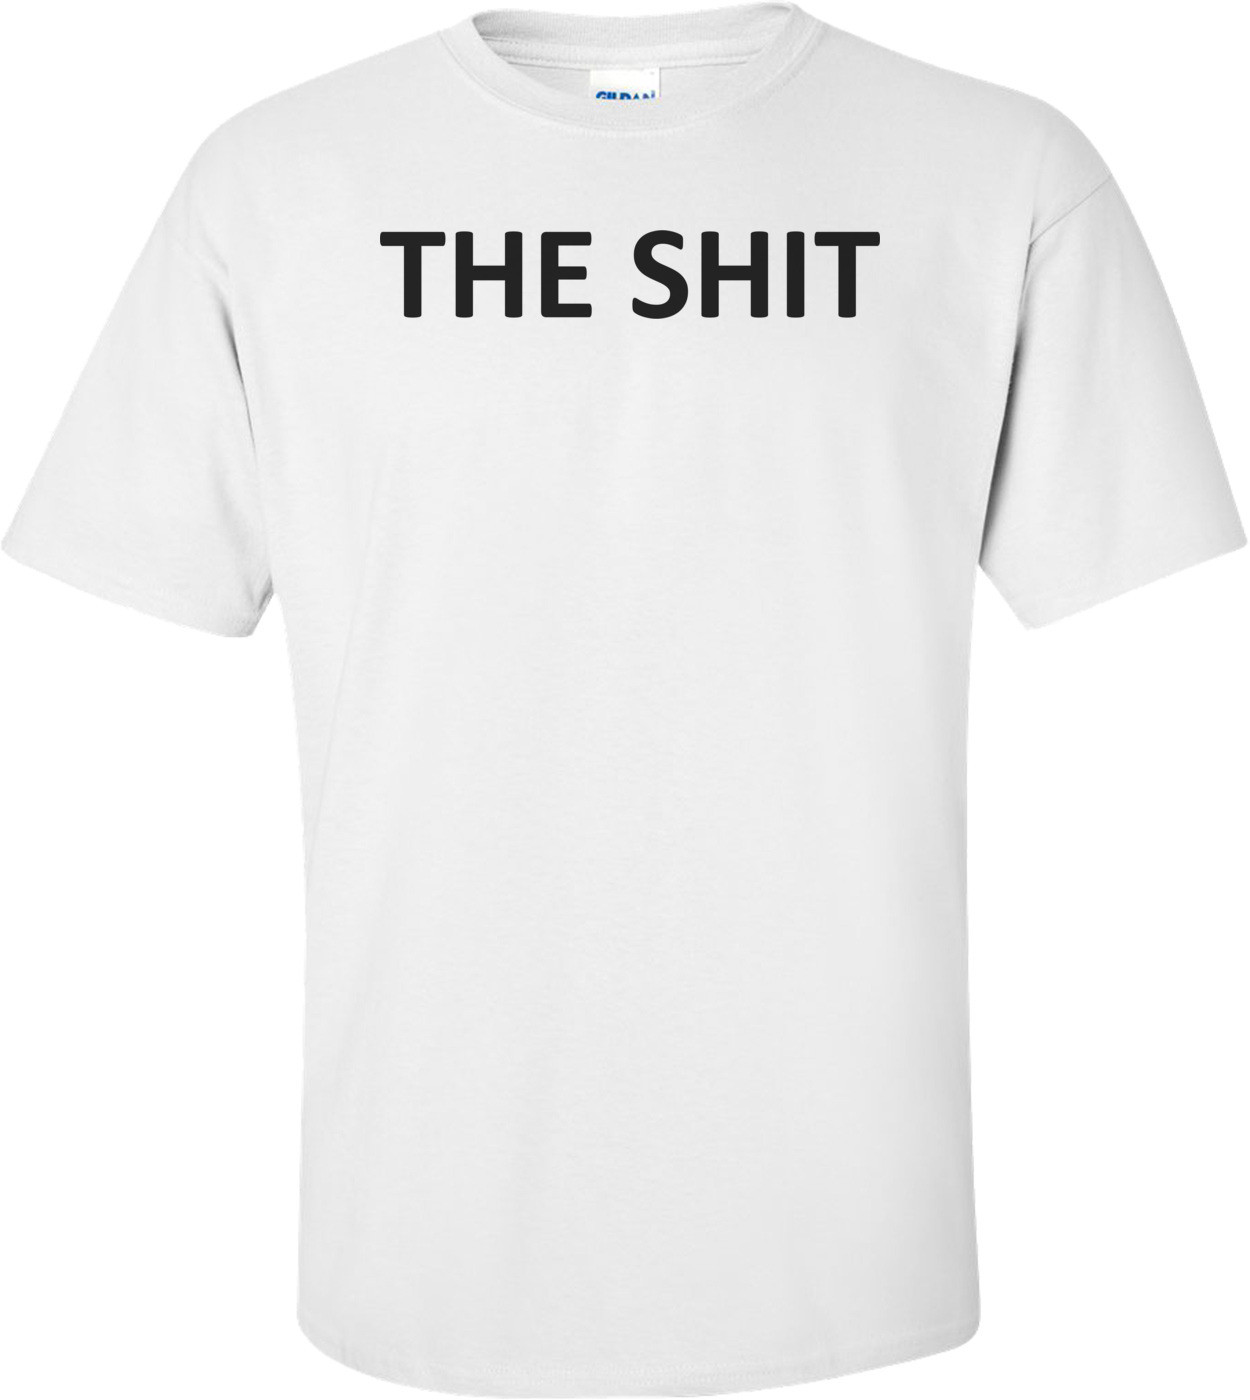 THE SHIT Shirt